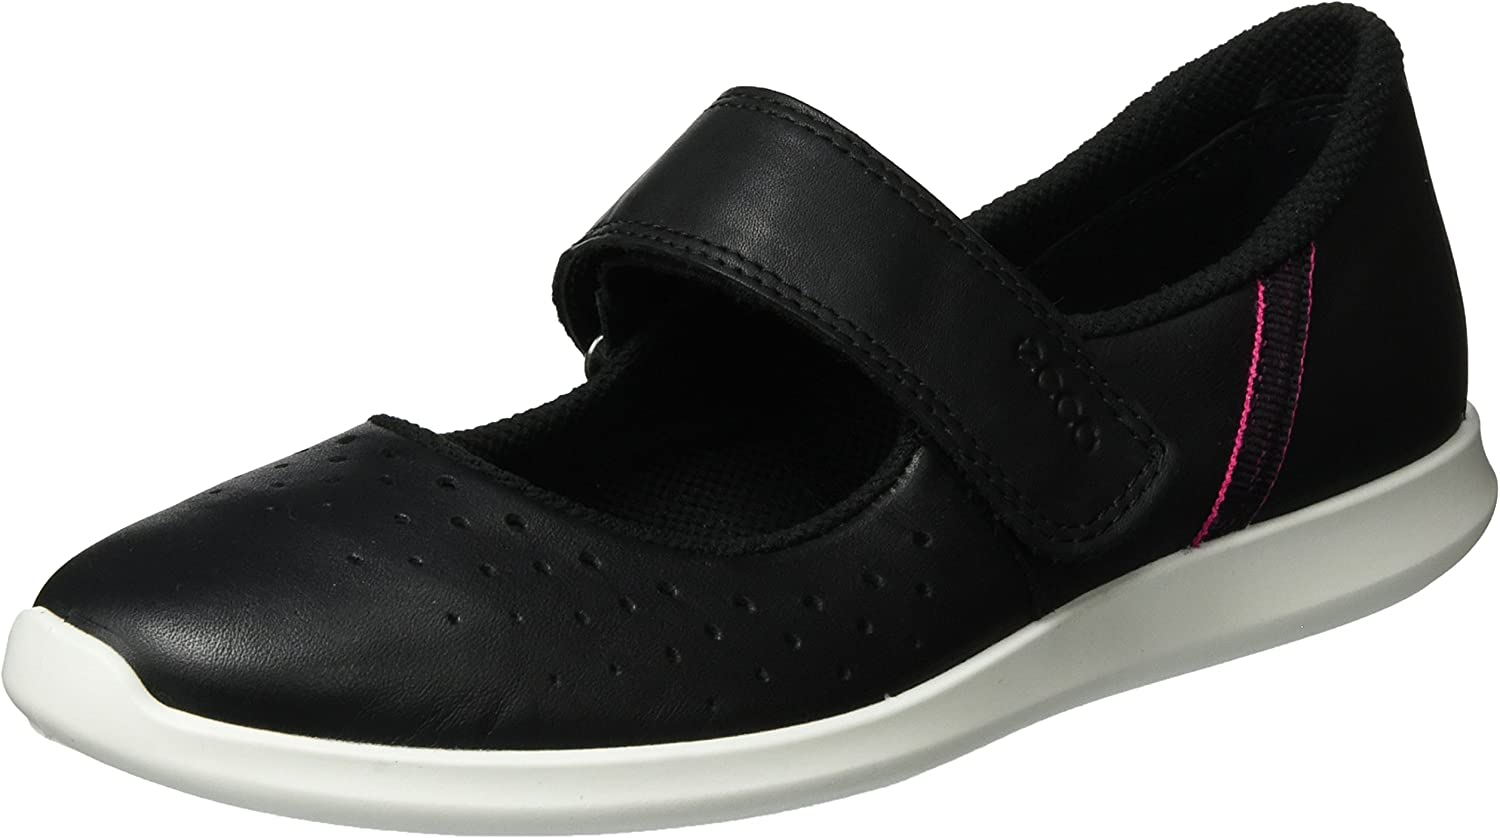 ECCO Womens Sense Mary Jane Fashion Sneaker